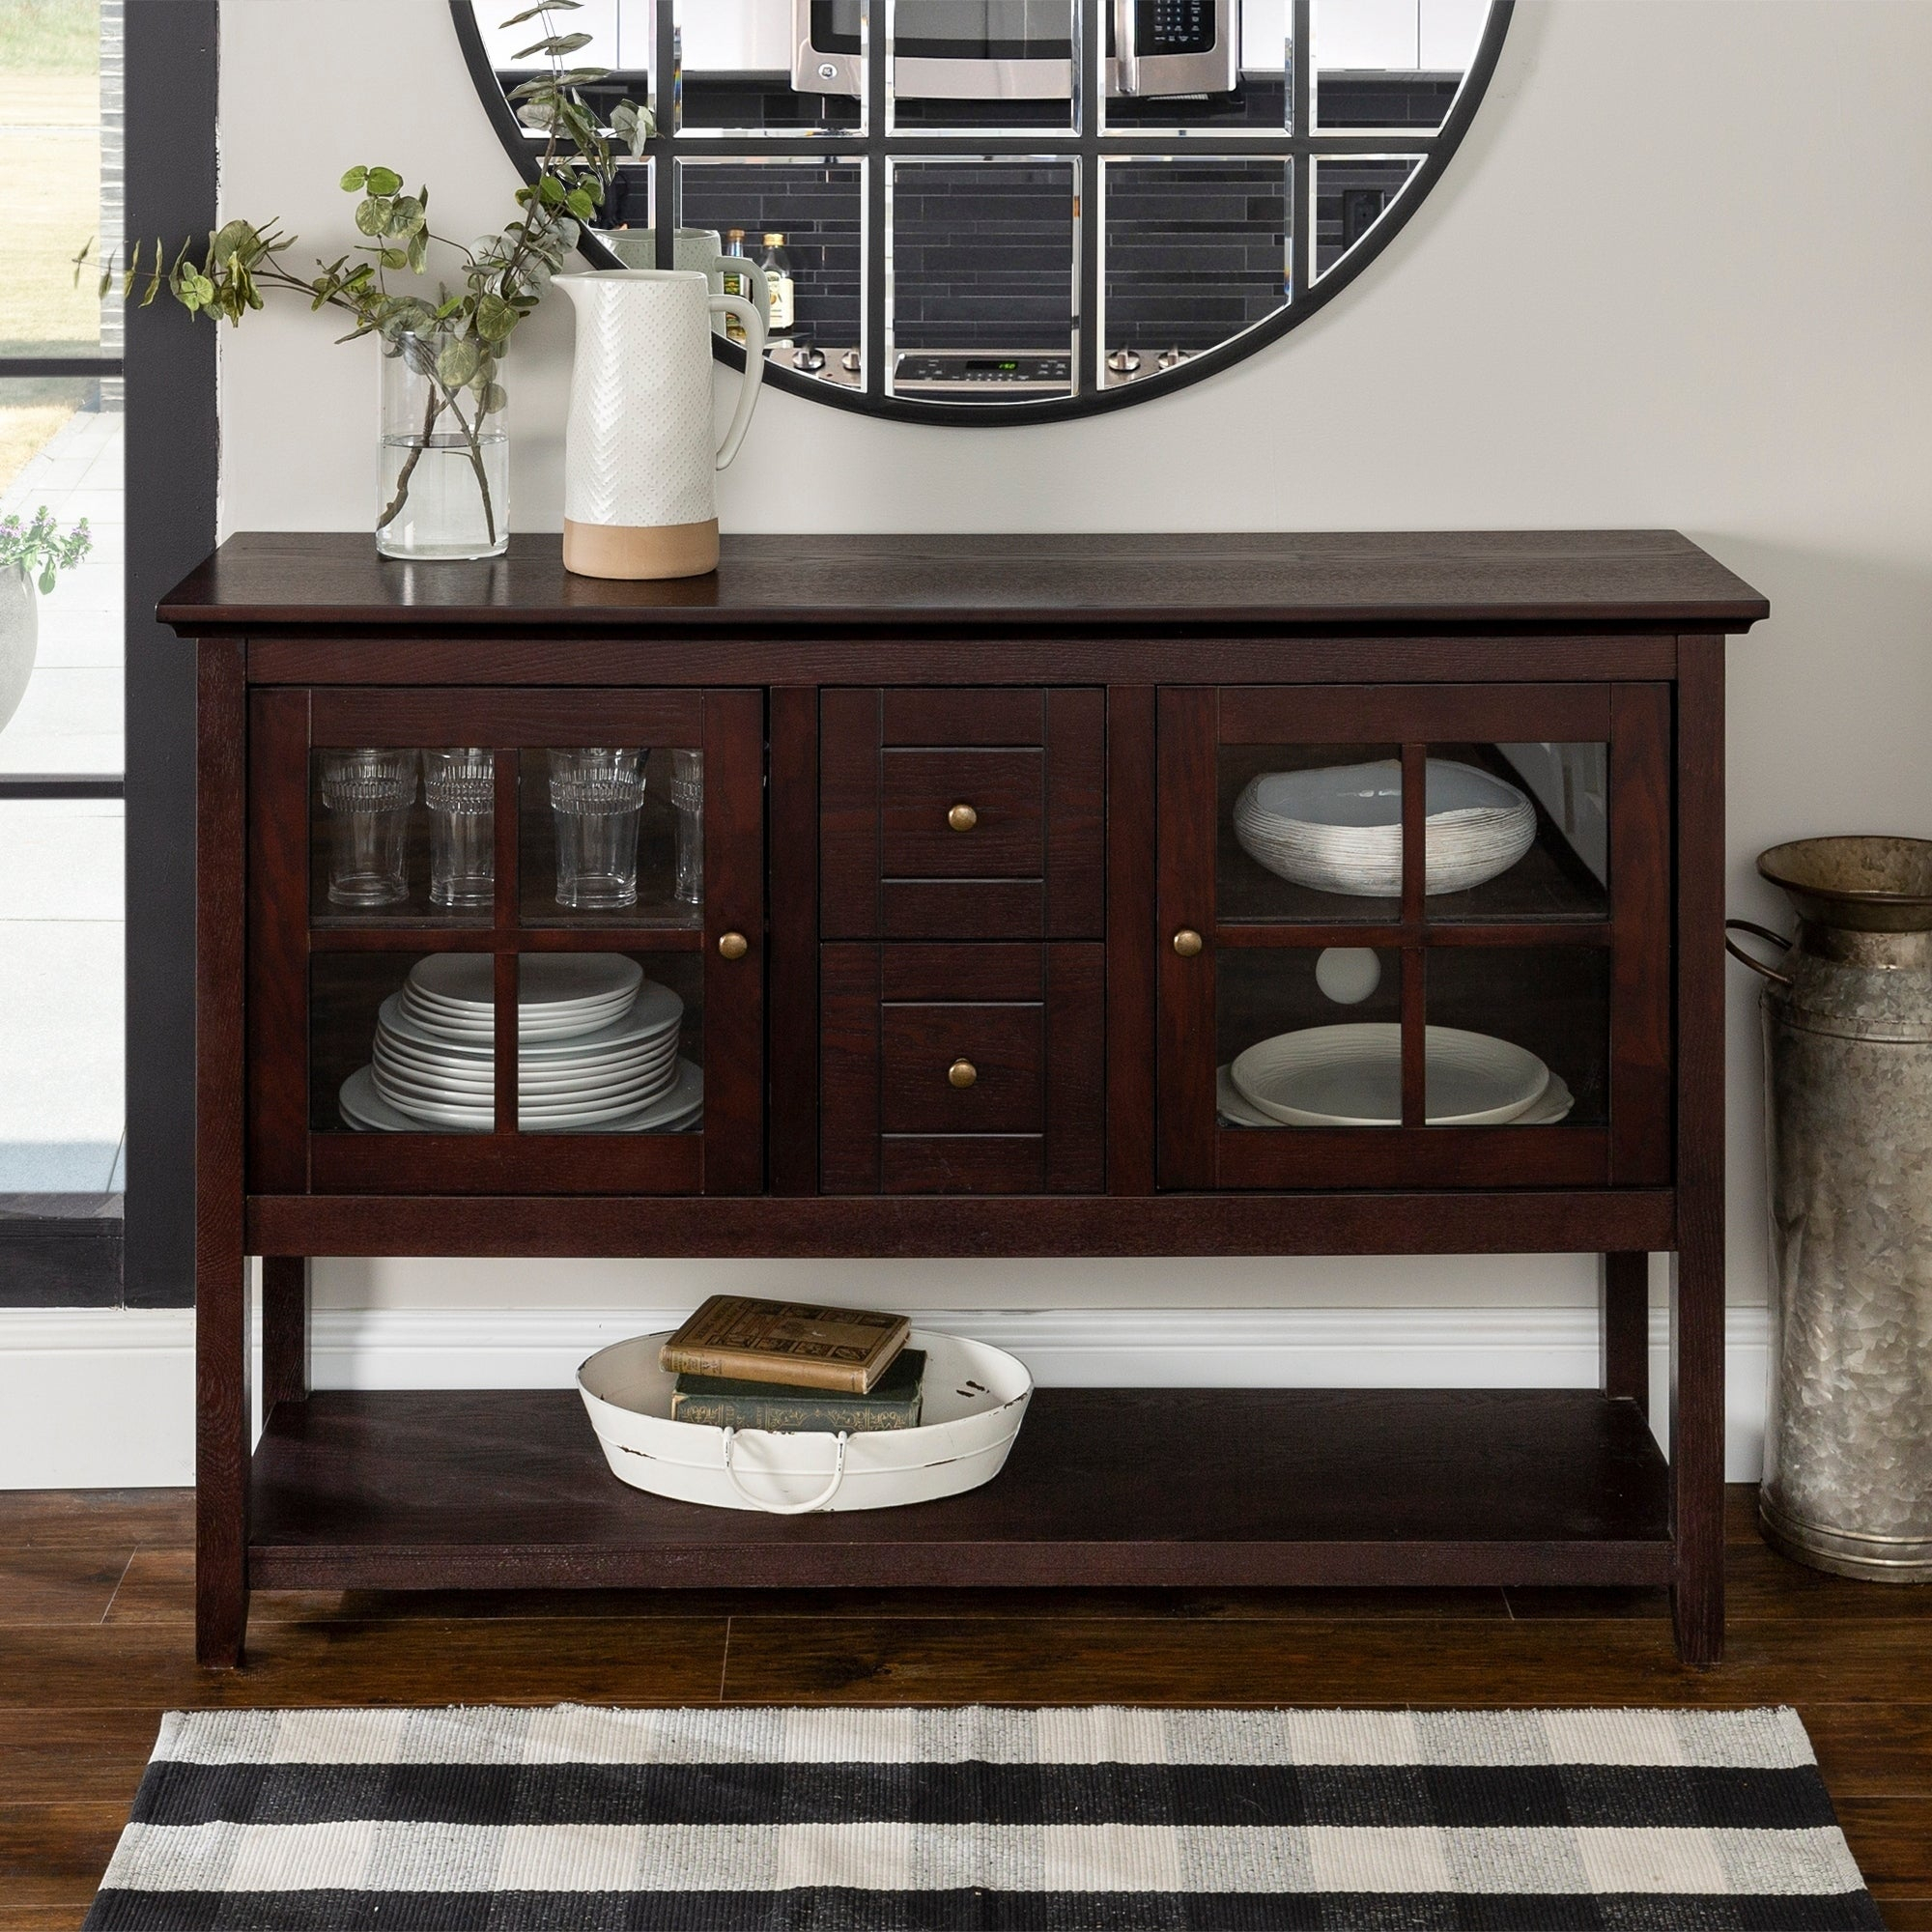 Middlebrook Designs 52 Inch Buffet Cabinet, Espresso, Tv Stand Console, Entertainment Center – 54 X 16 X 35H Pertaining To Contemporary Espresso 2 Cabinet Dining Buffets (View 23 of 30)